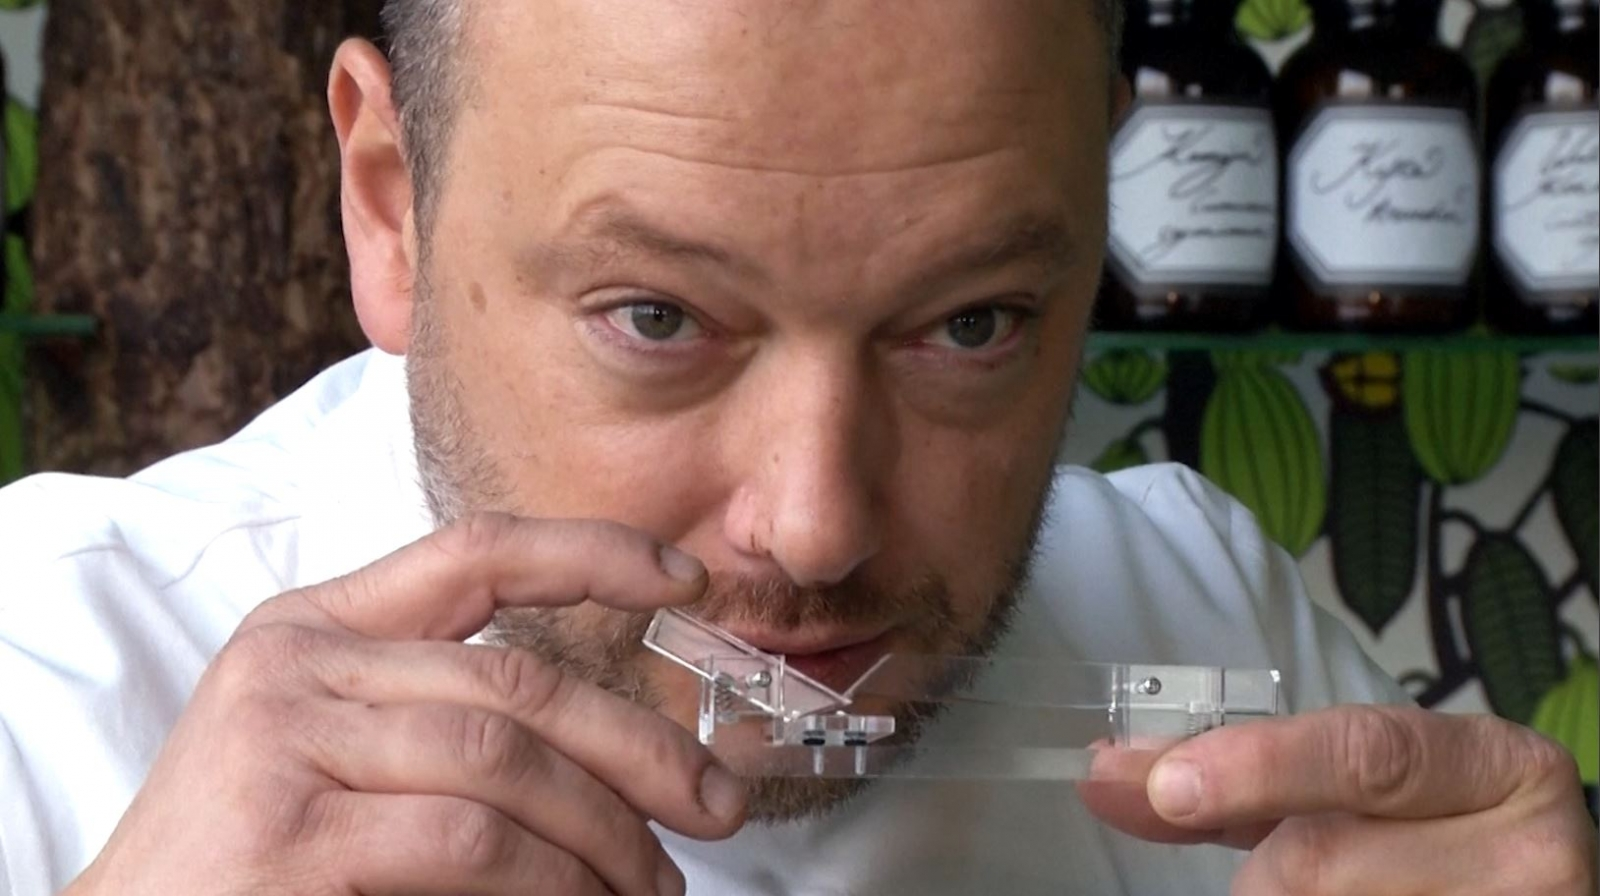 Chocolate Shooter: Device for snorting cocoa powder gives a new meaning to 'nose candy'